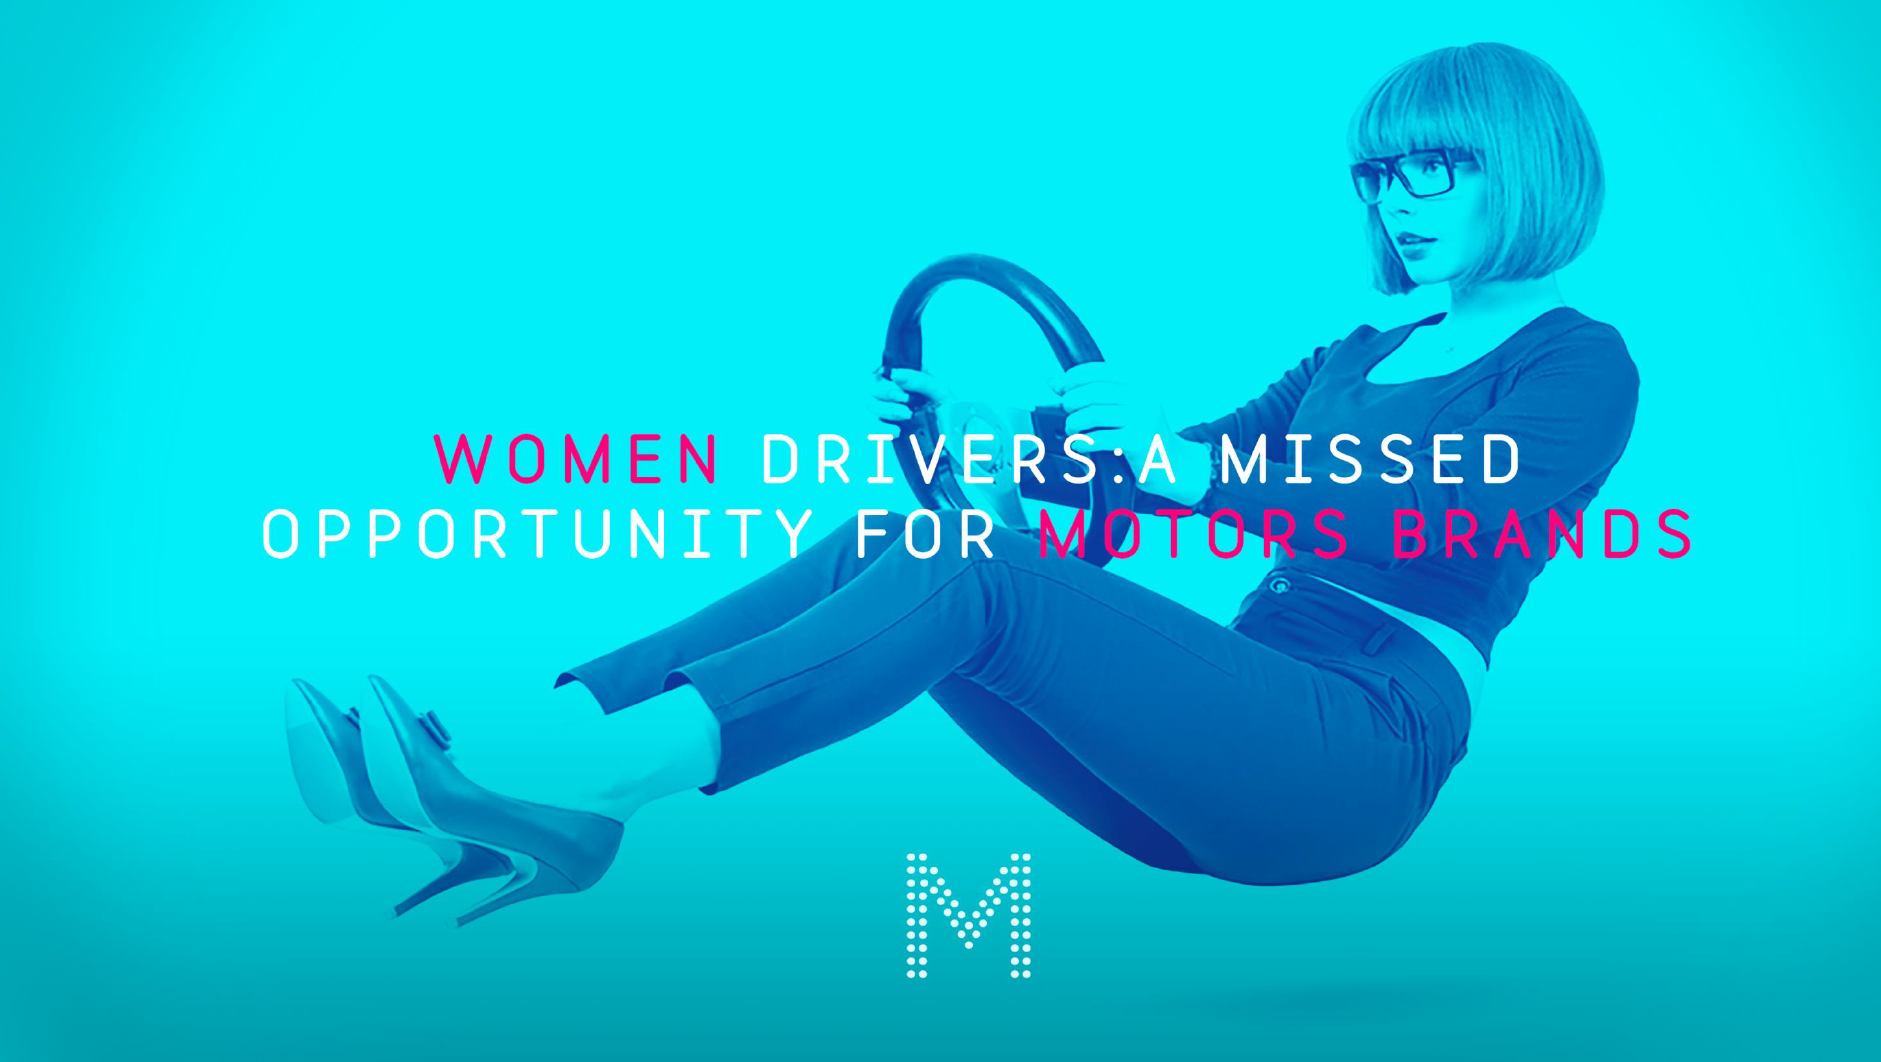 Women drivers a missed opportunity - report